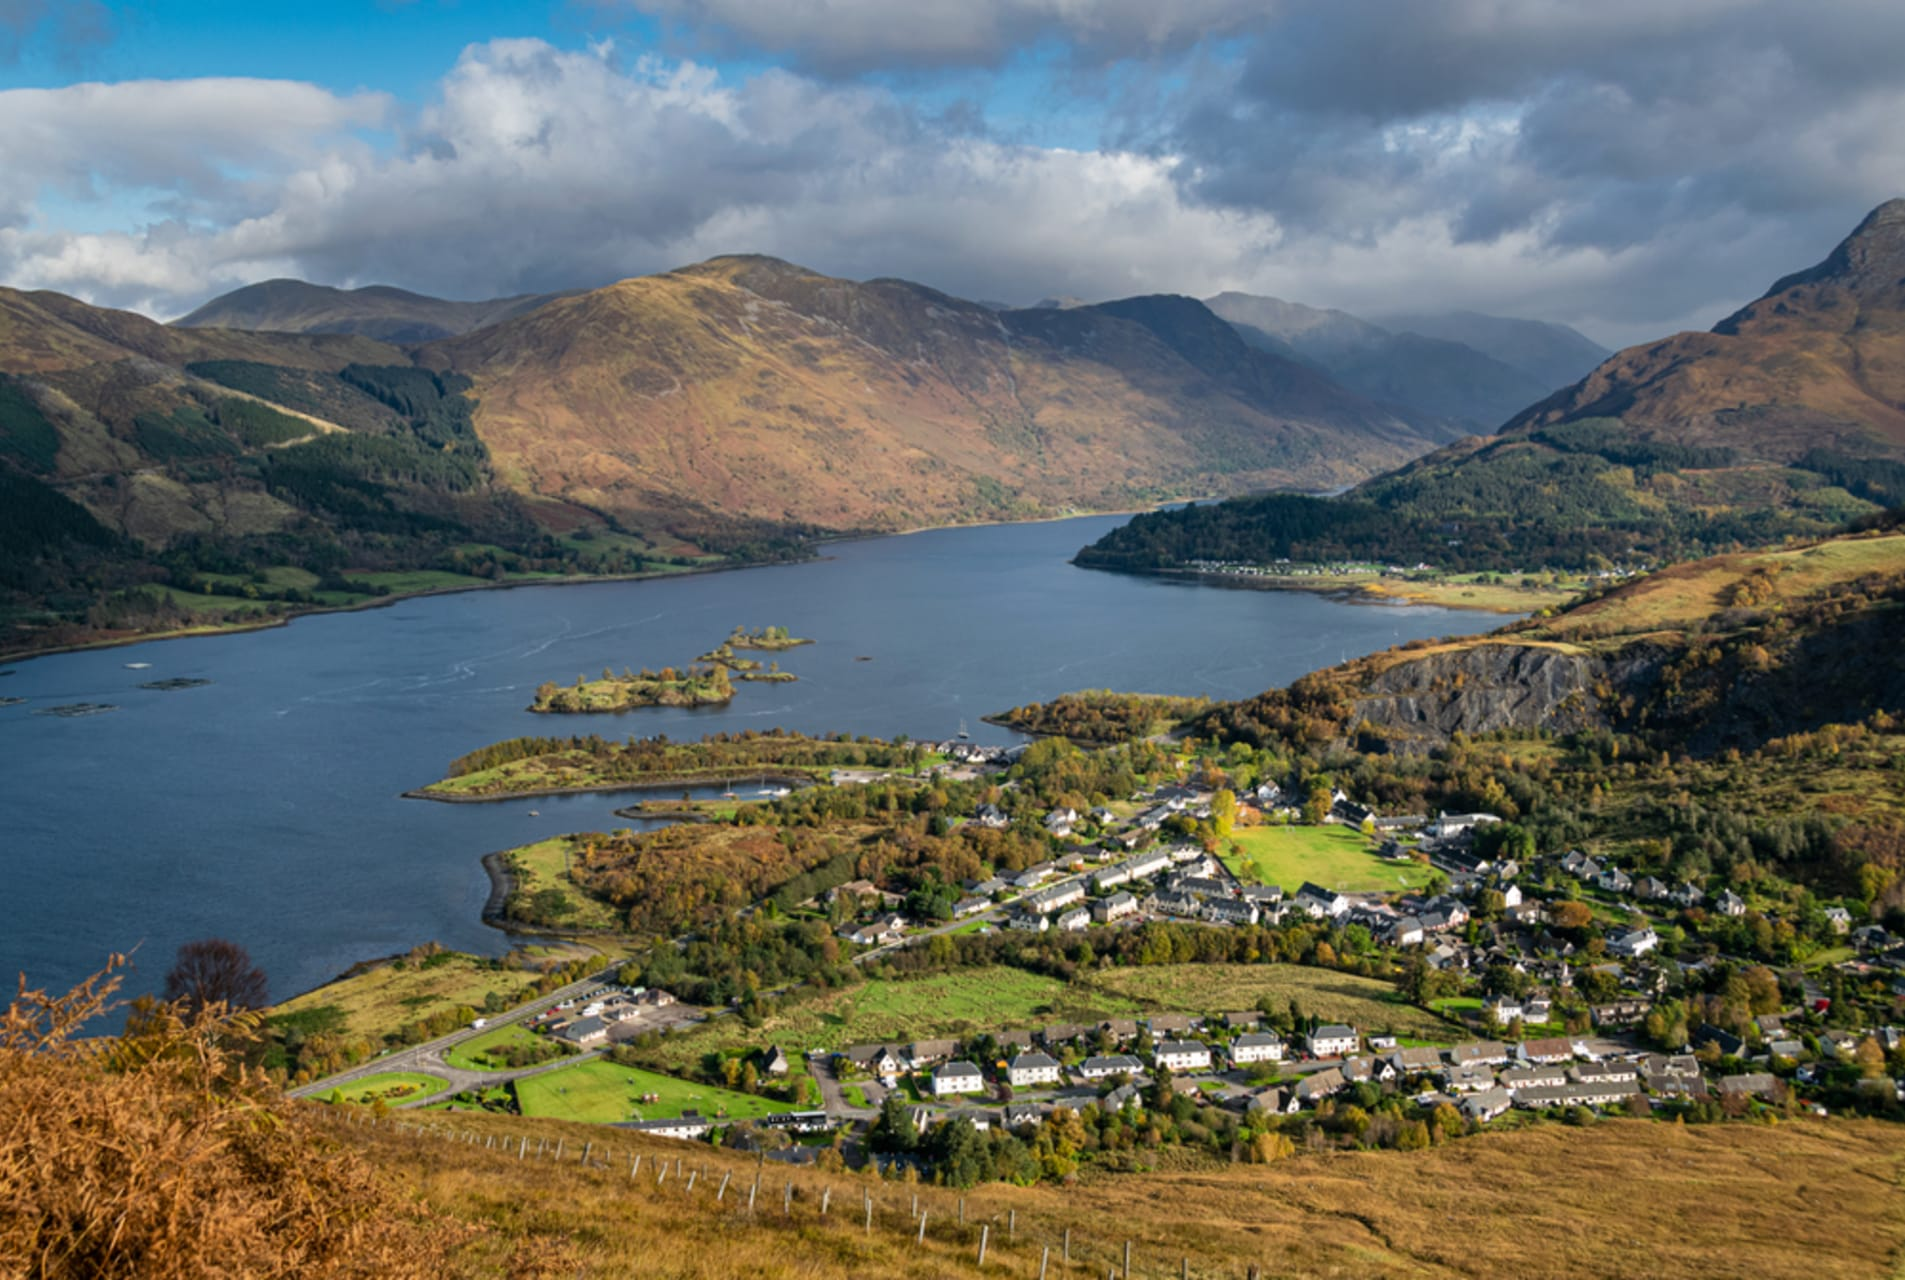 The Scottish Highlands - Ballachulish: The History of a Highland Village